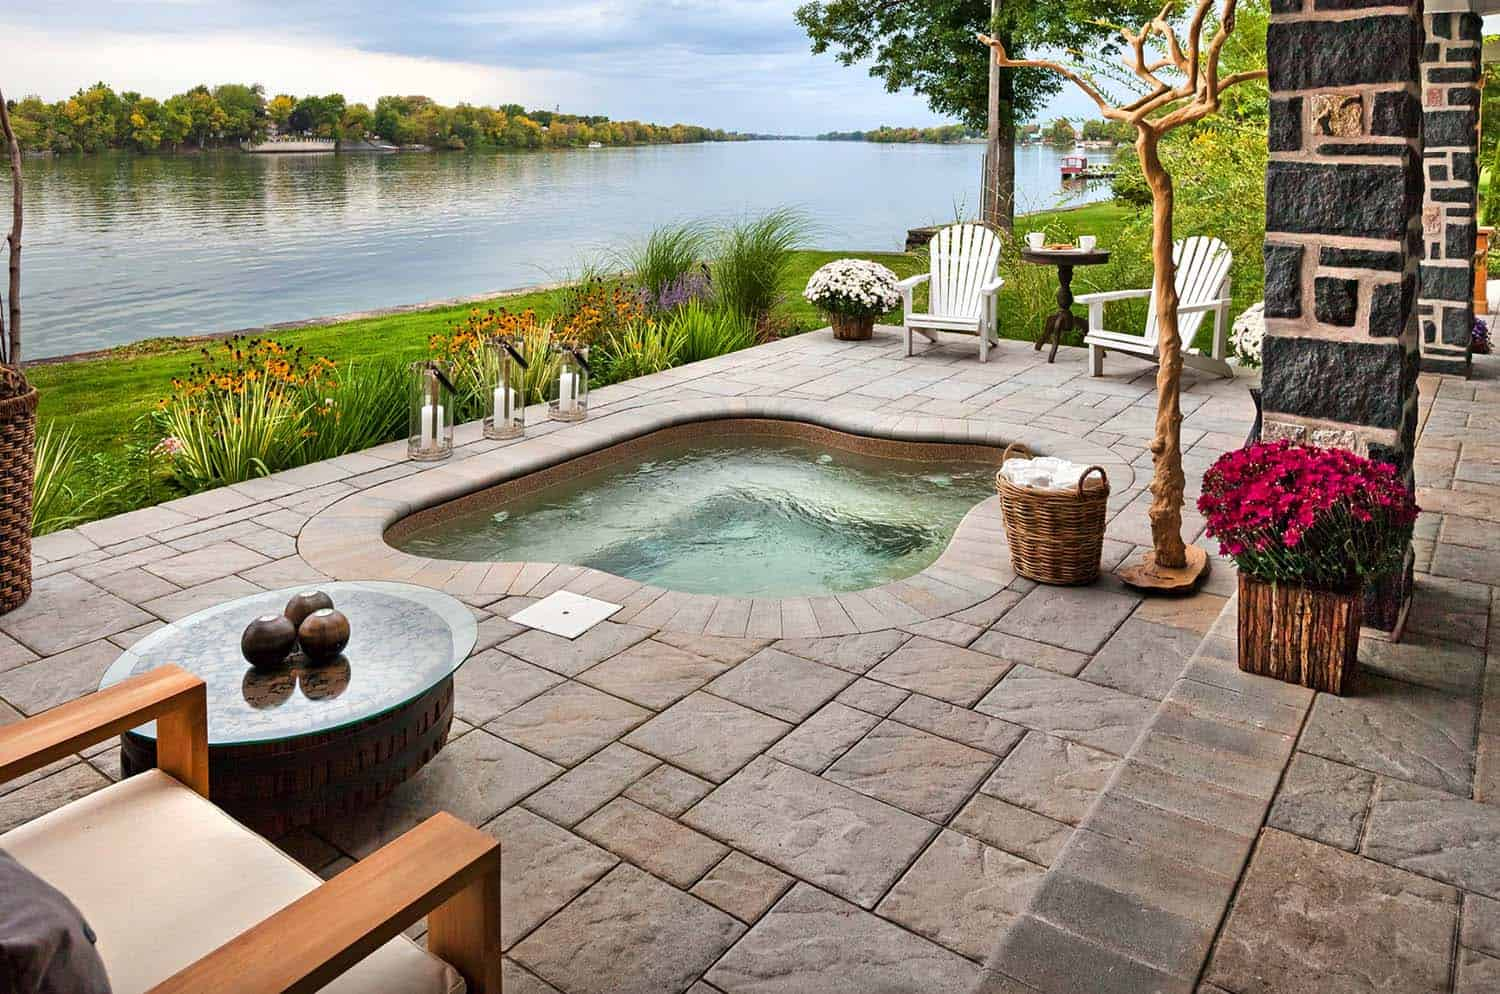 Jacuzzi Pool Design 40 Outstanding Hot Tub Ideas To Create A Backyard Oasis